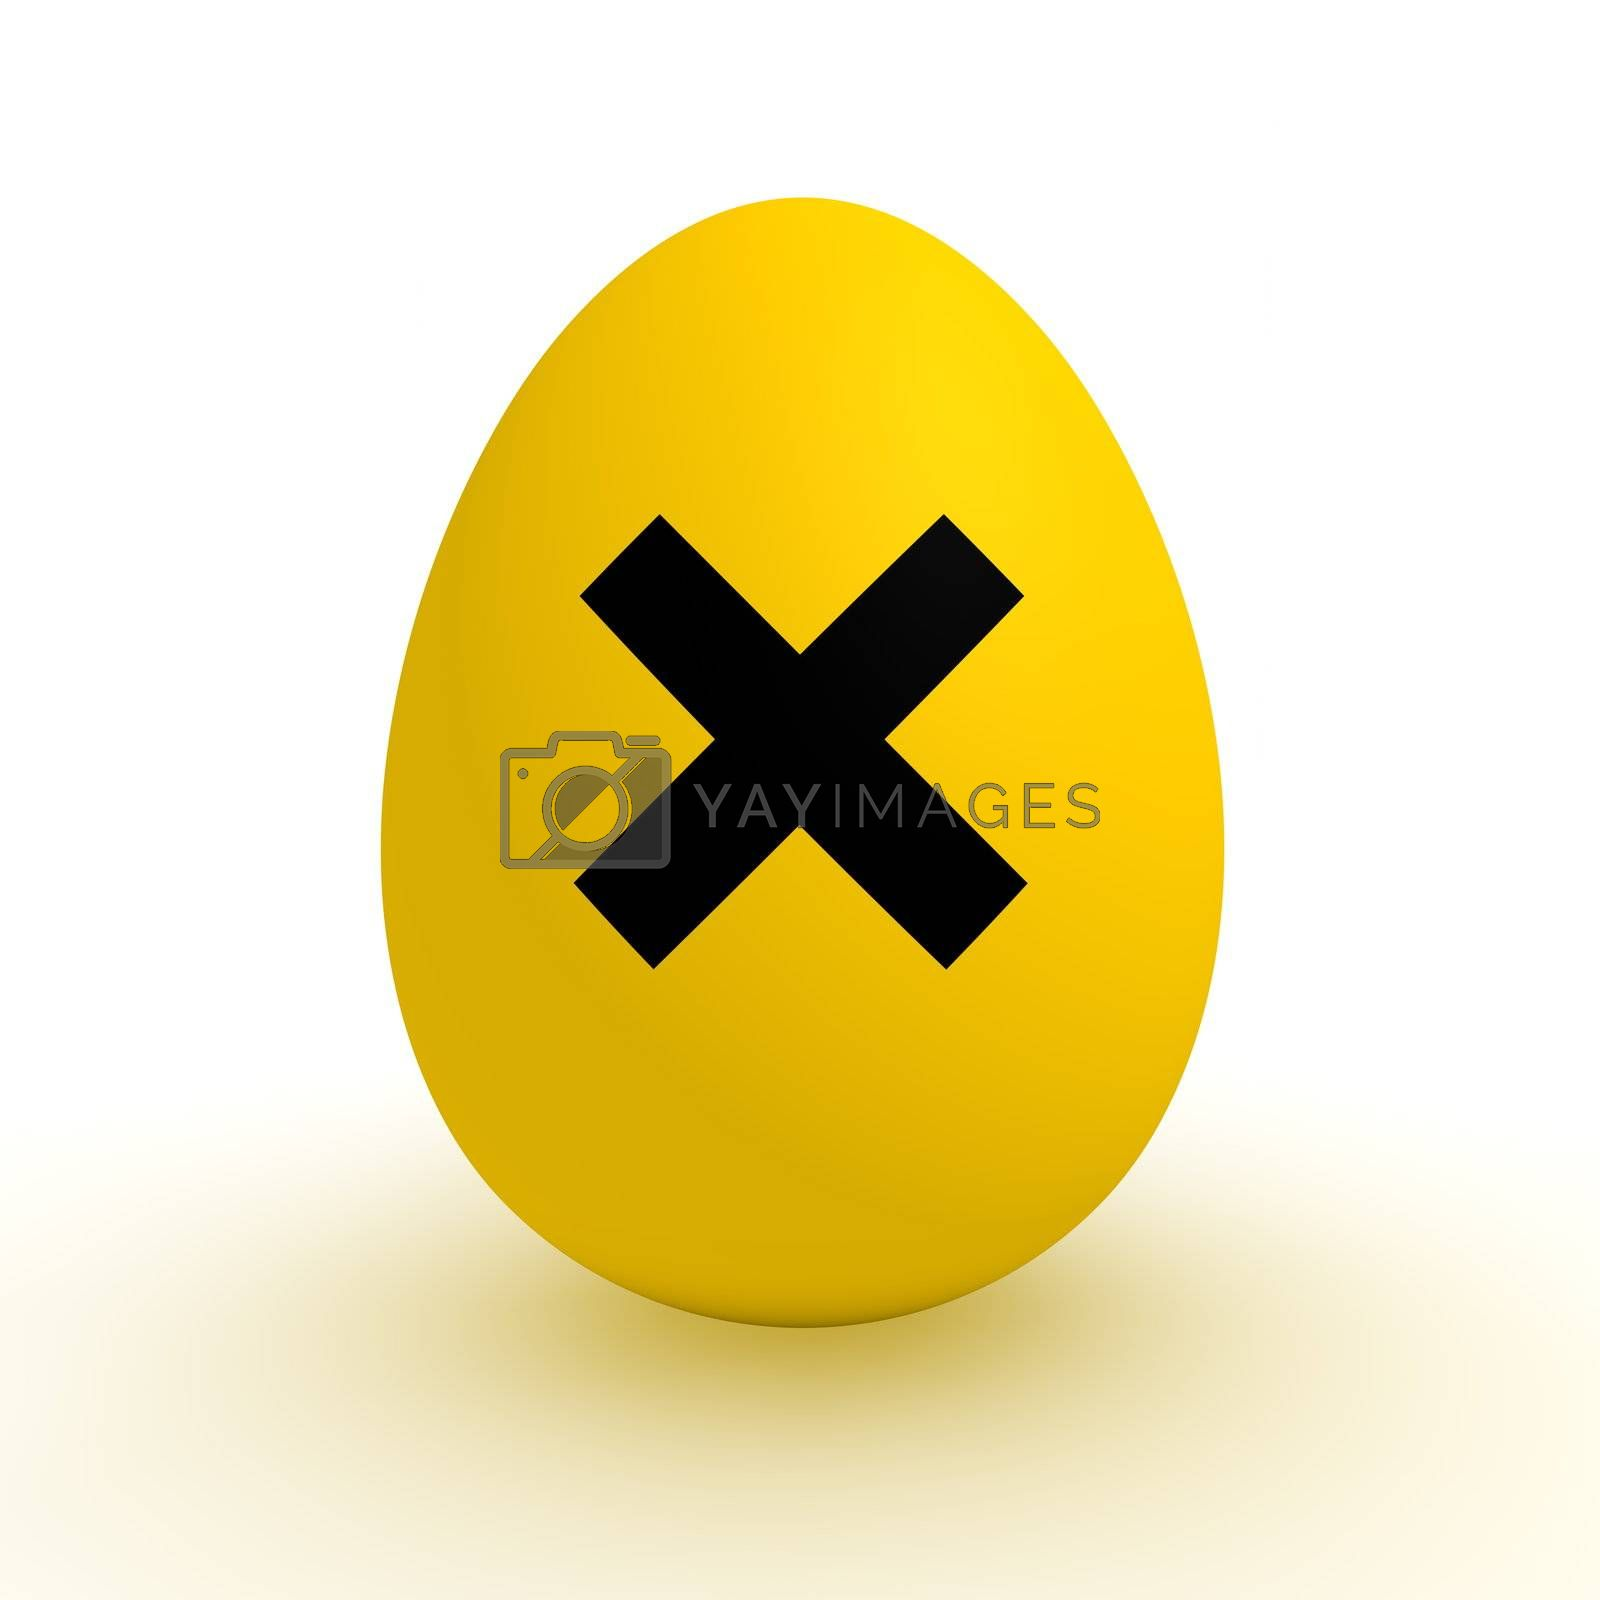 a single yellow egg with a black irritant warning sign on it - polluted food